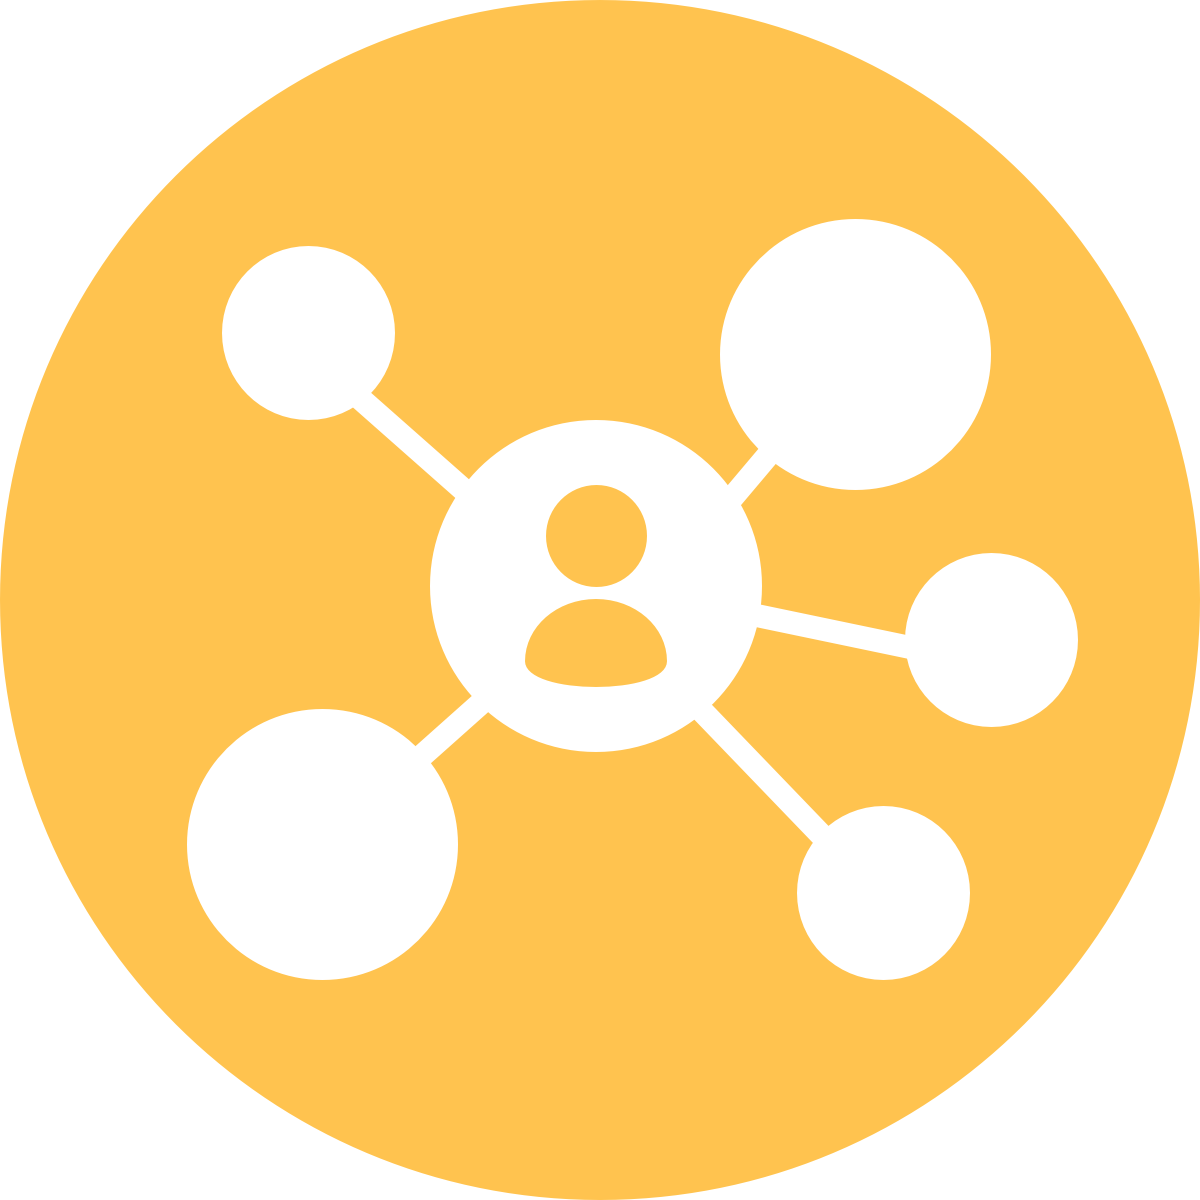 A person is in the center and surrounded by multiple circles